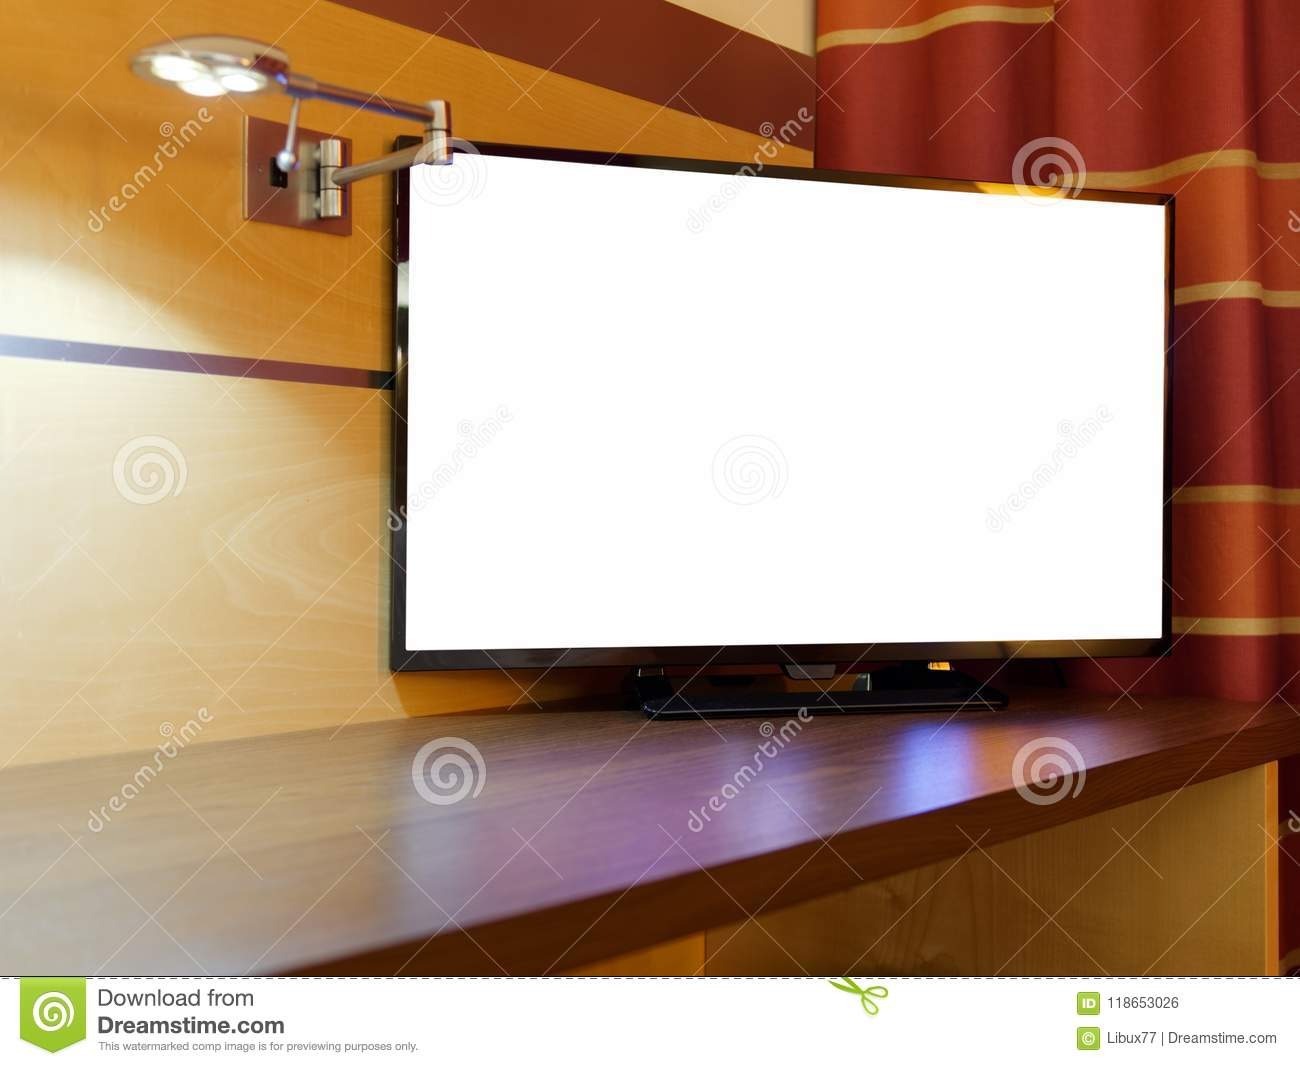 Flat Television or TV Blank Display night bedroom